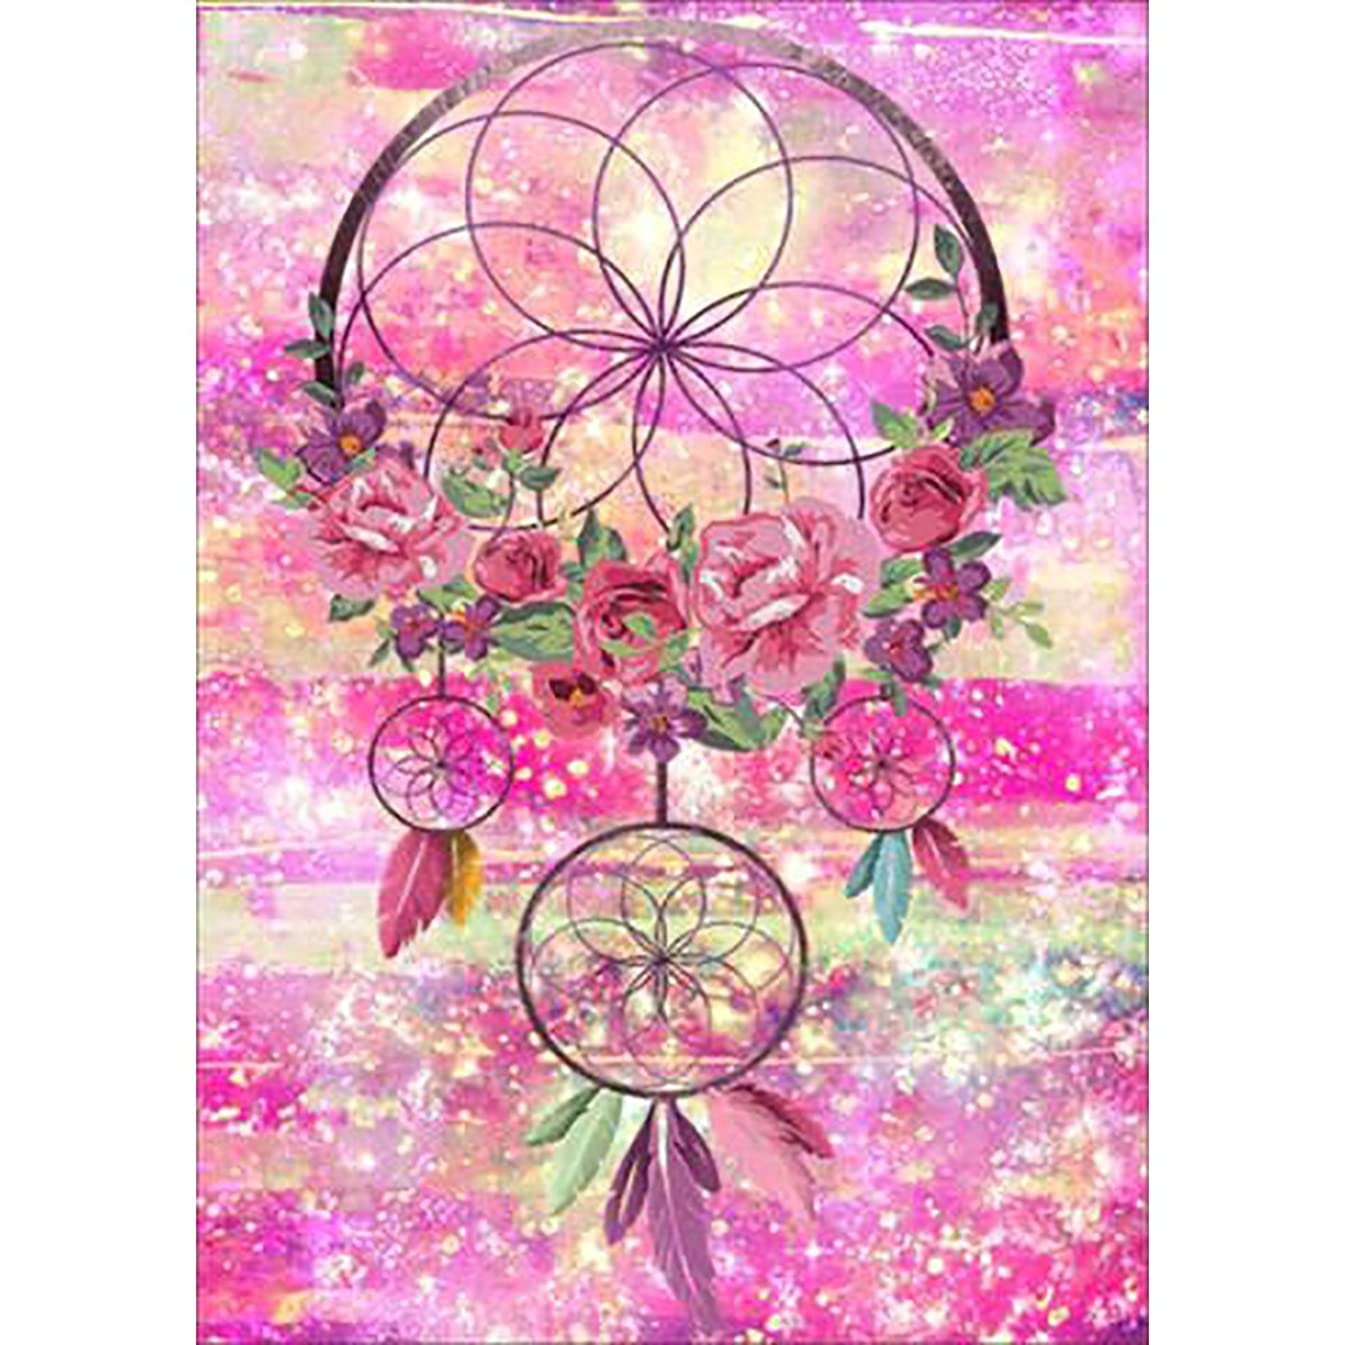 DIY 5D Diamond Painting by Number Kits, Full Drill Crystal Rhinestone Embroidery Pictures Arts Craft for Home Wall Decor Gift,Dream Catcher